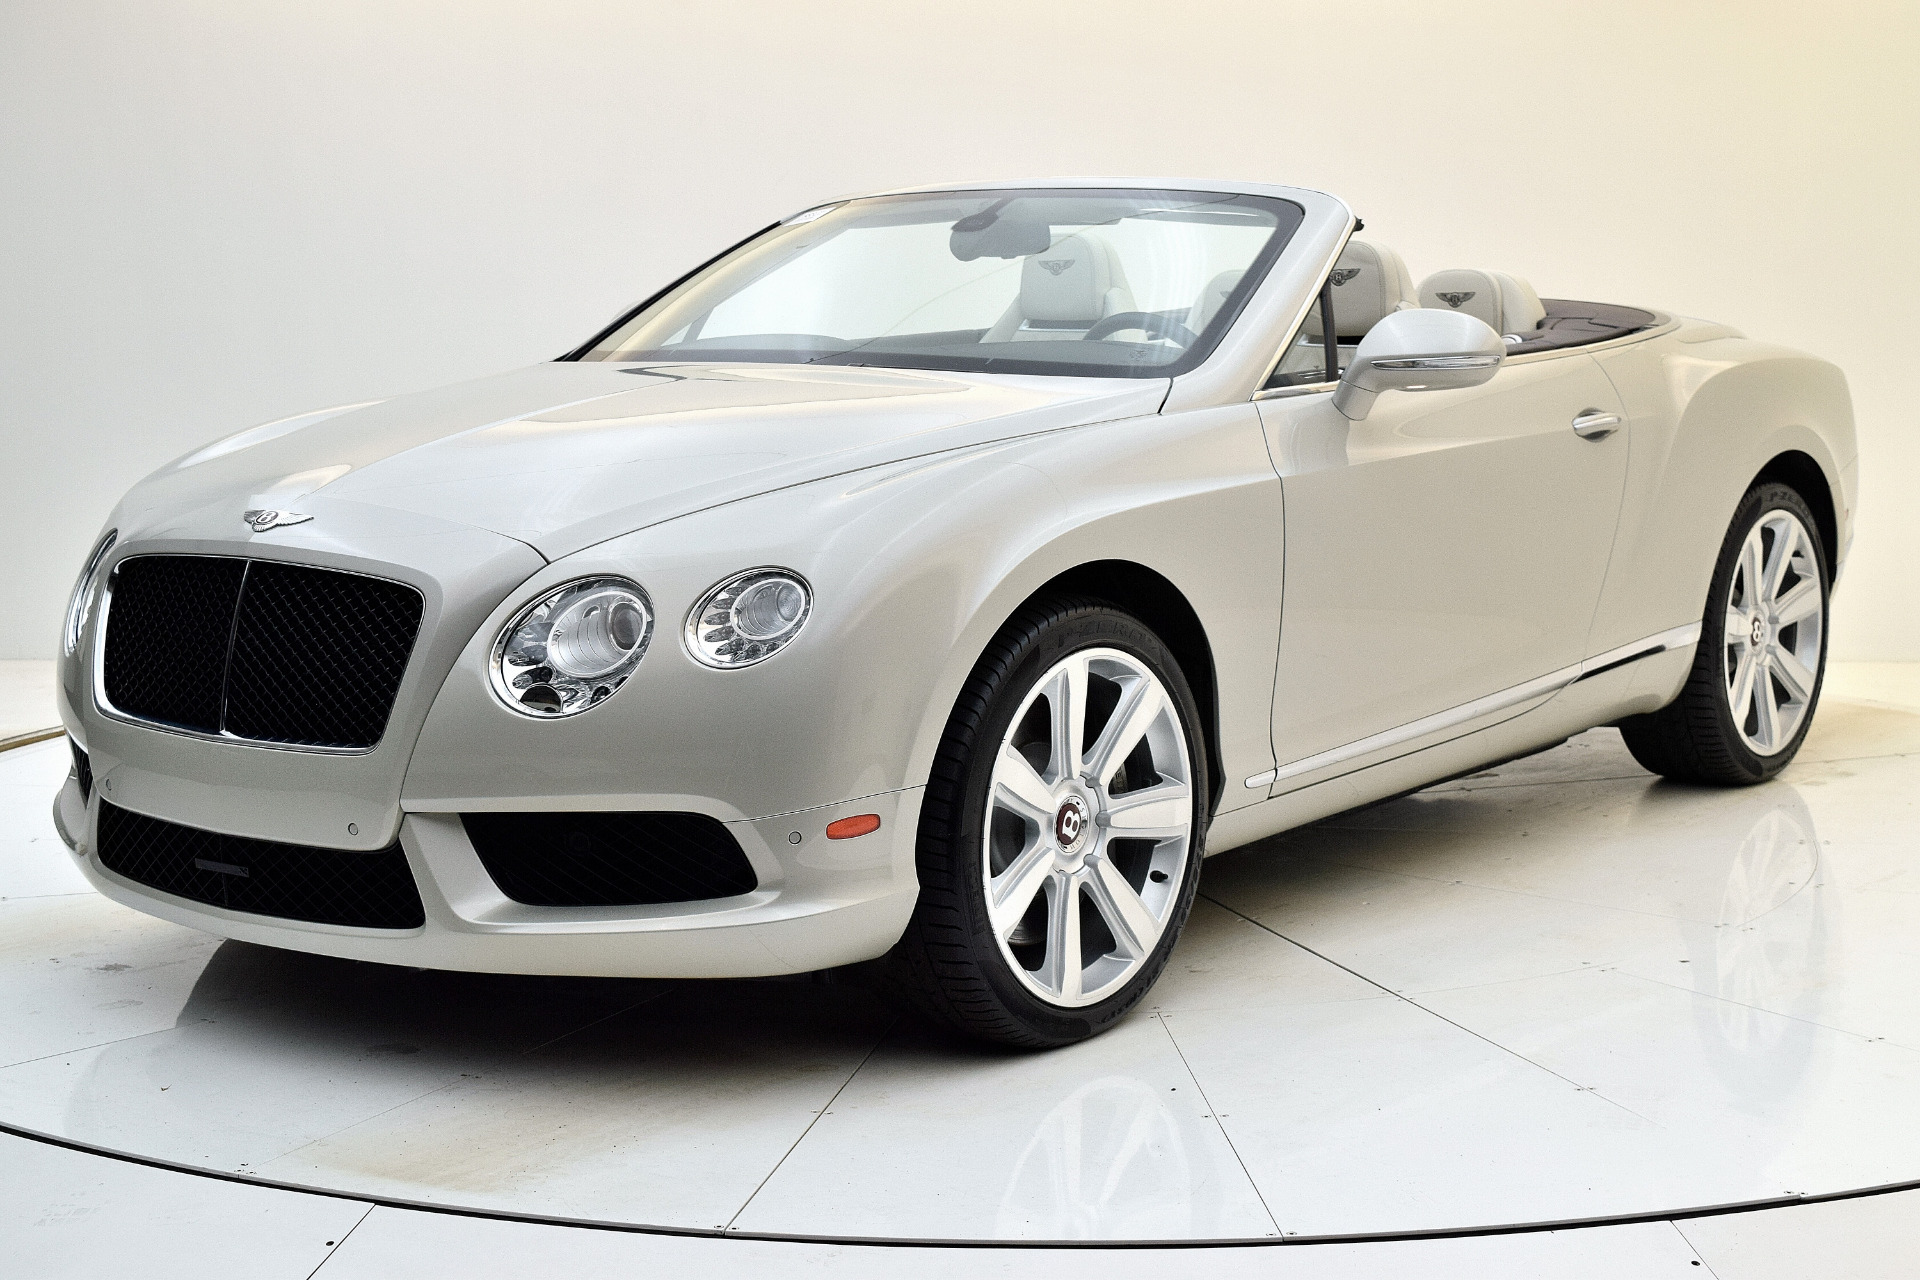 Used 2013 Bentley Continental GT V8 Convertible for sale Sold at Bentley Palmyra N.J. in Palmyra NJ 08065 2